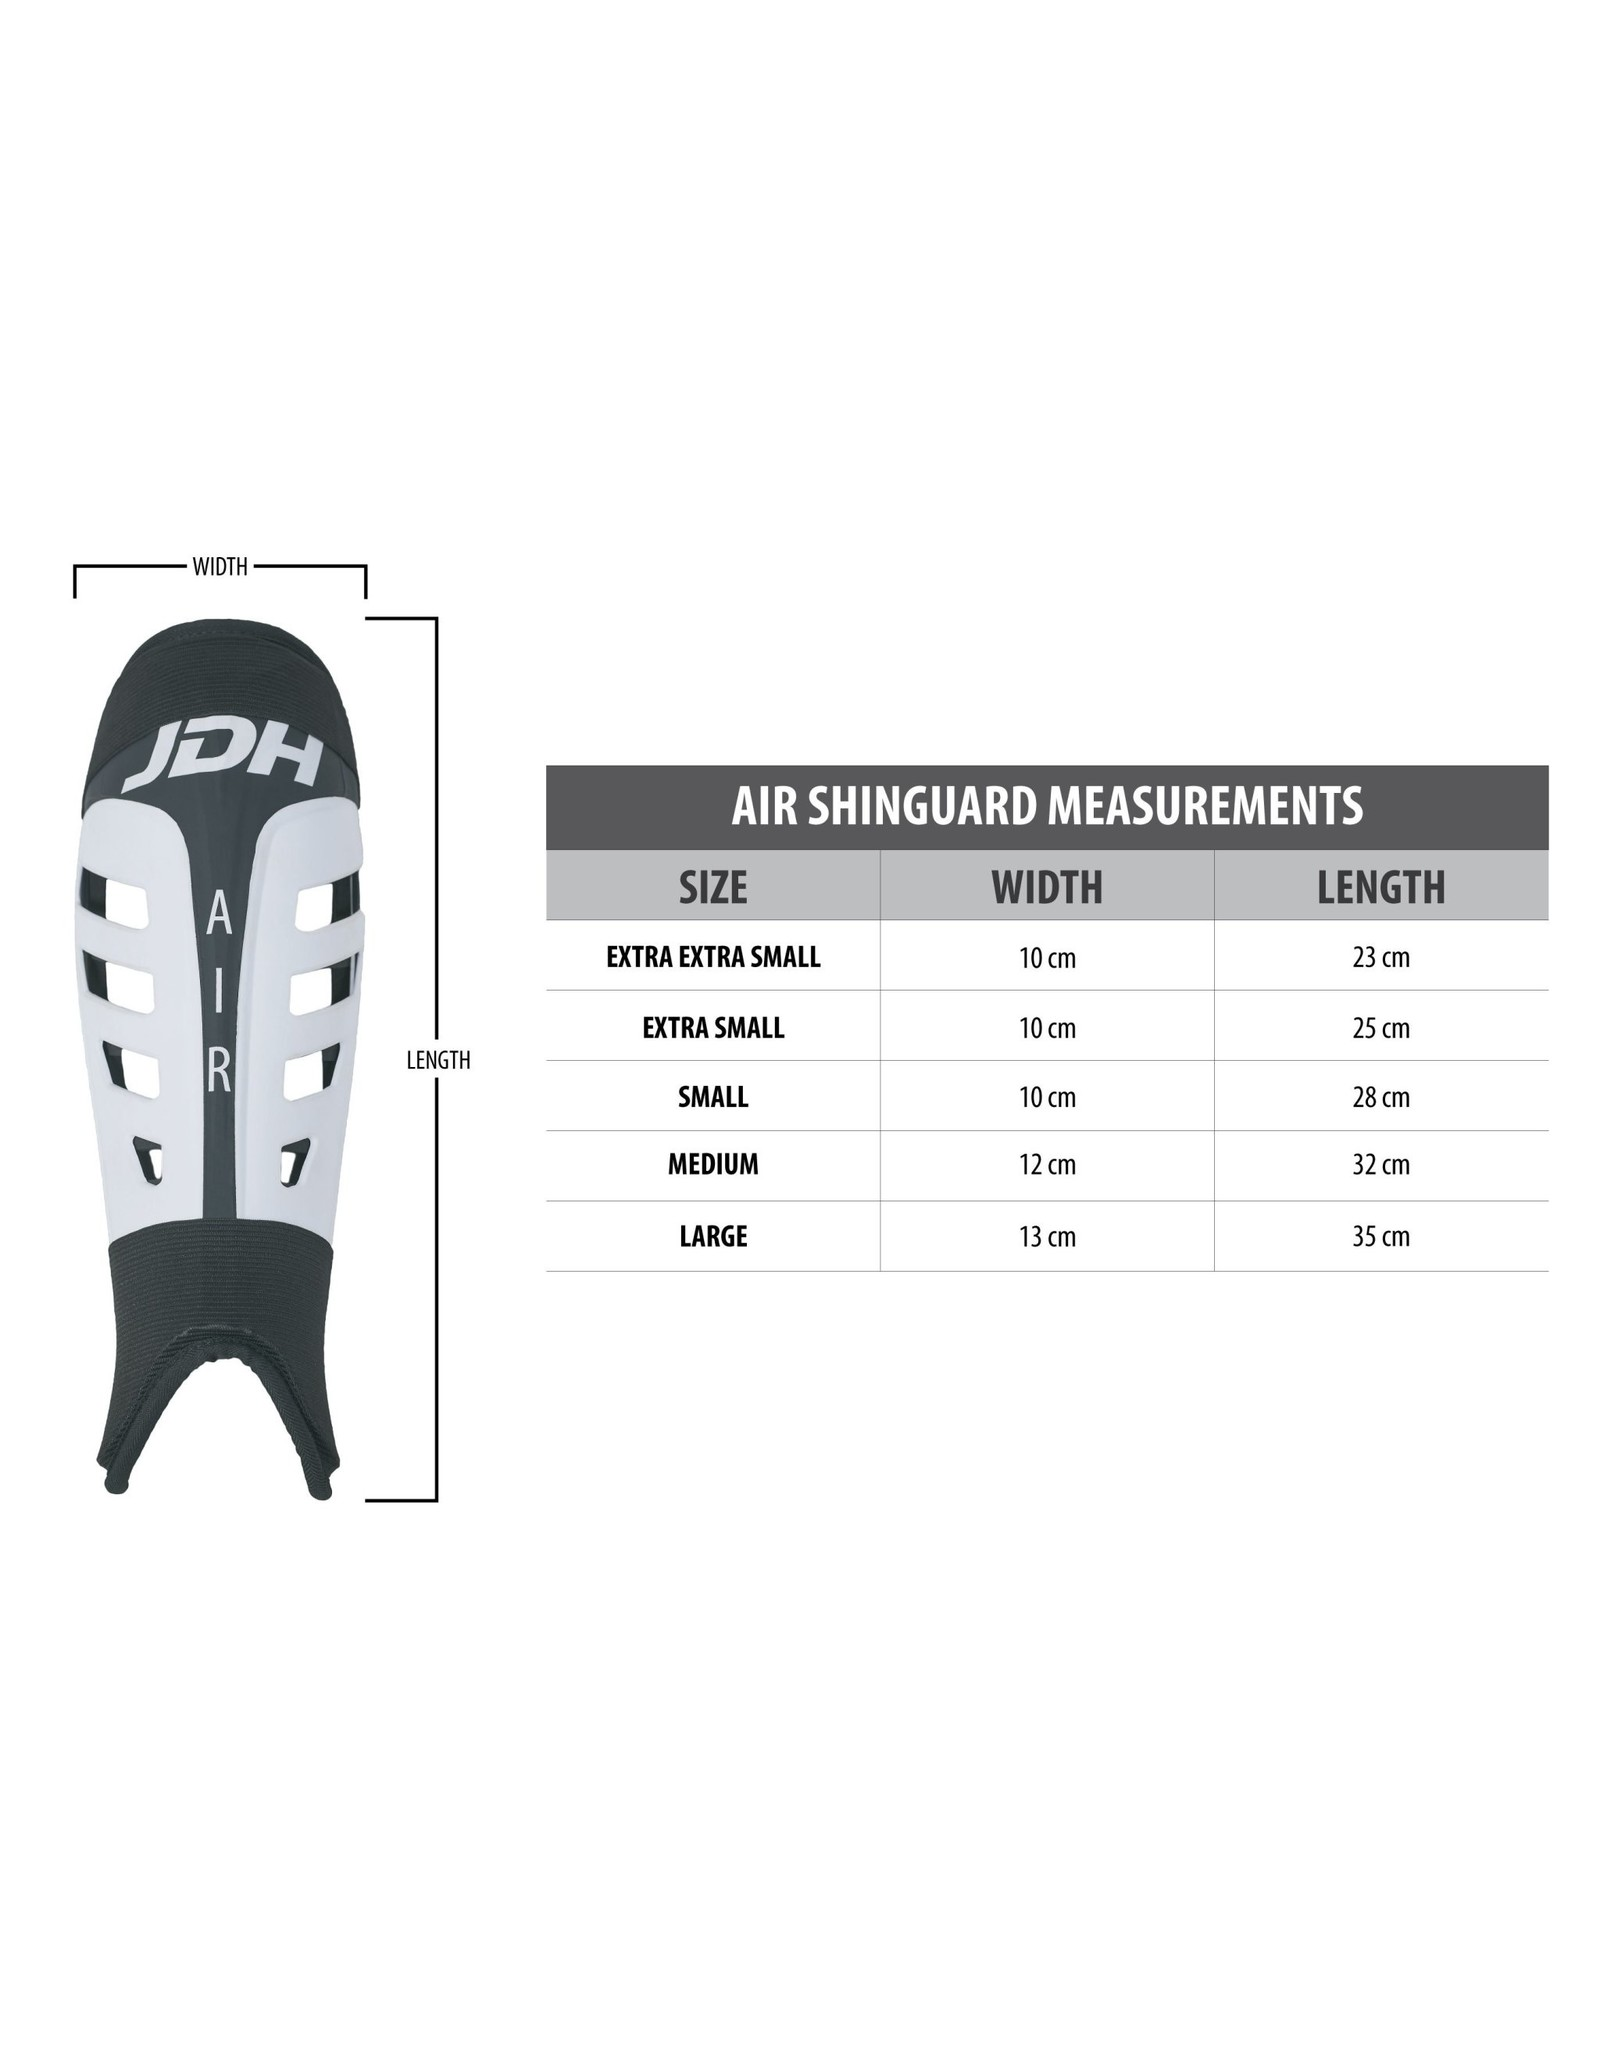 JDH JDH AIR SHINGUARD